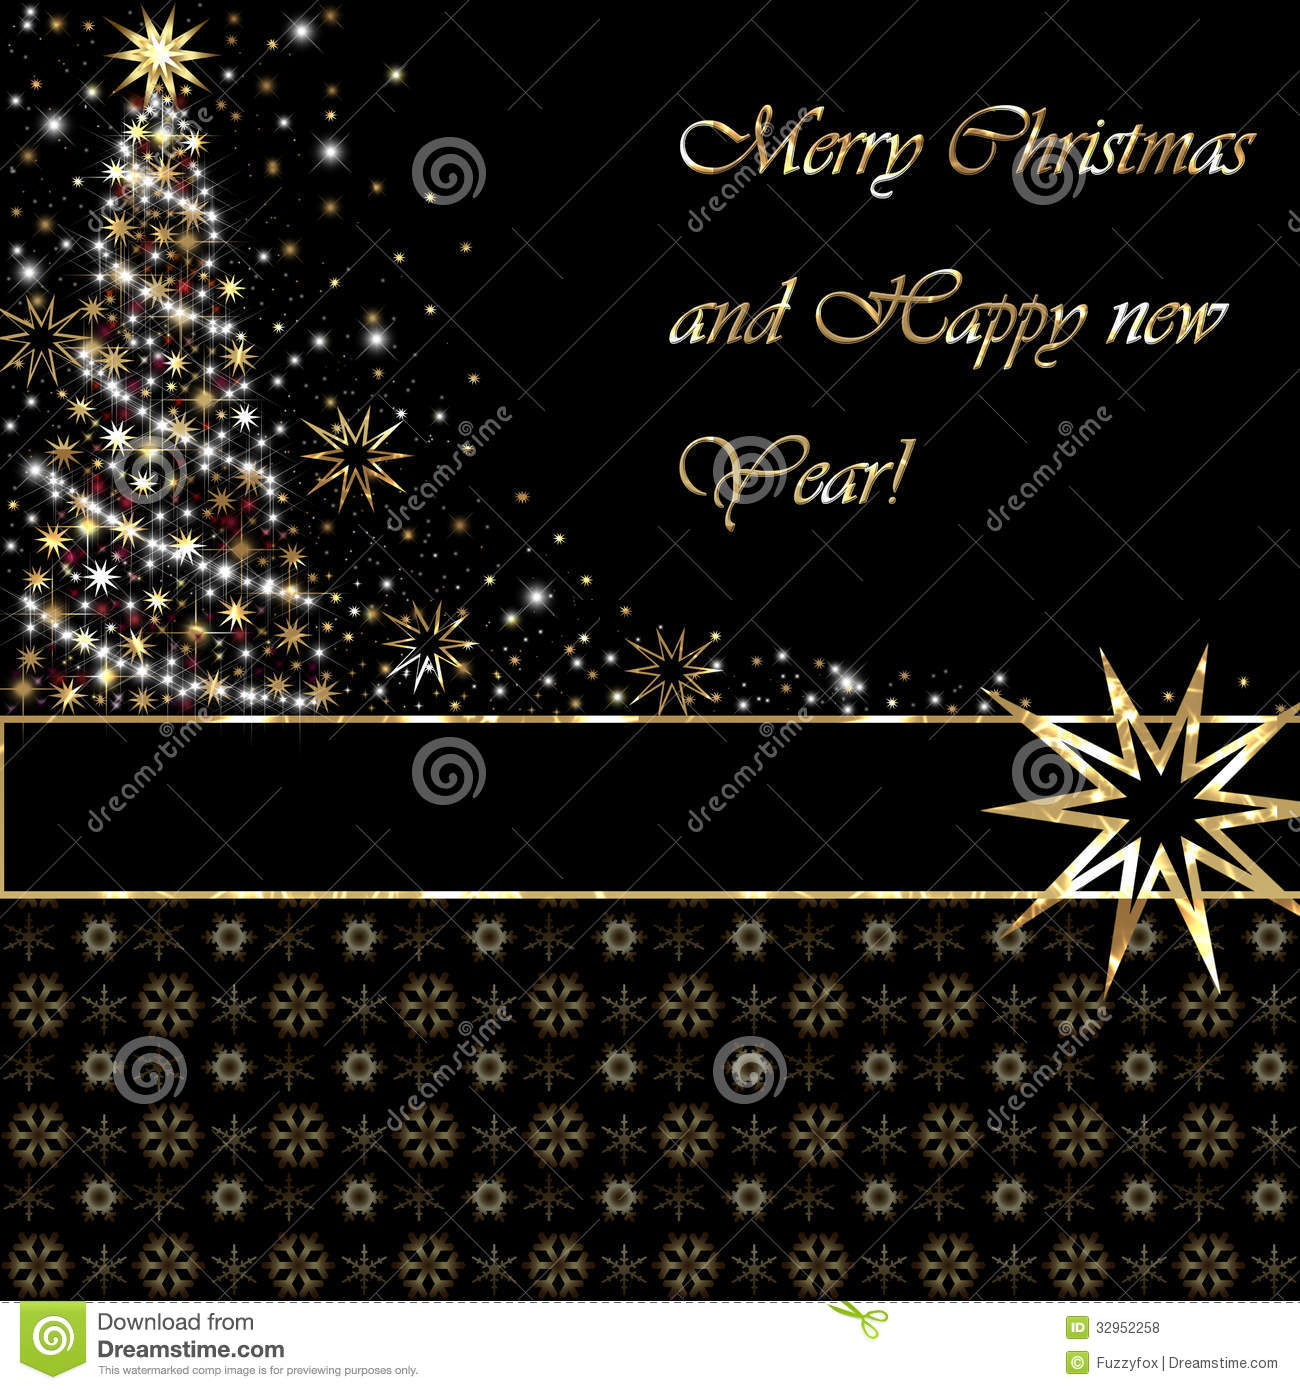 merry christmas and happy new year greeting card stock illustration jpg 1300x1390 african american happy new